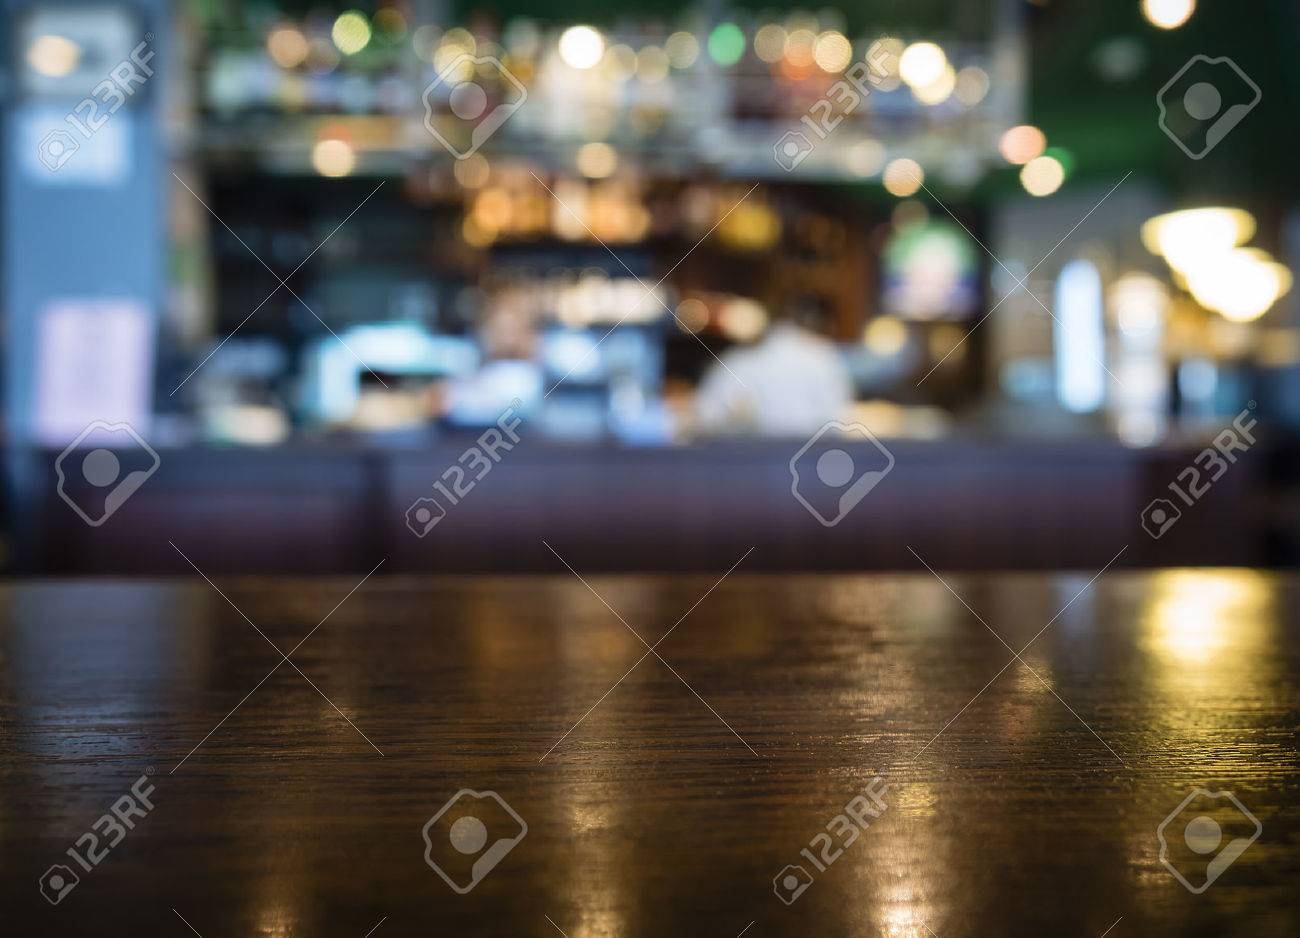 Table top Counter with Blurred Bar Restaurant Background - 58149336